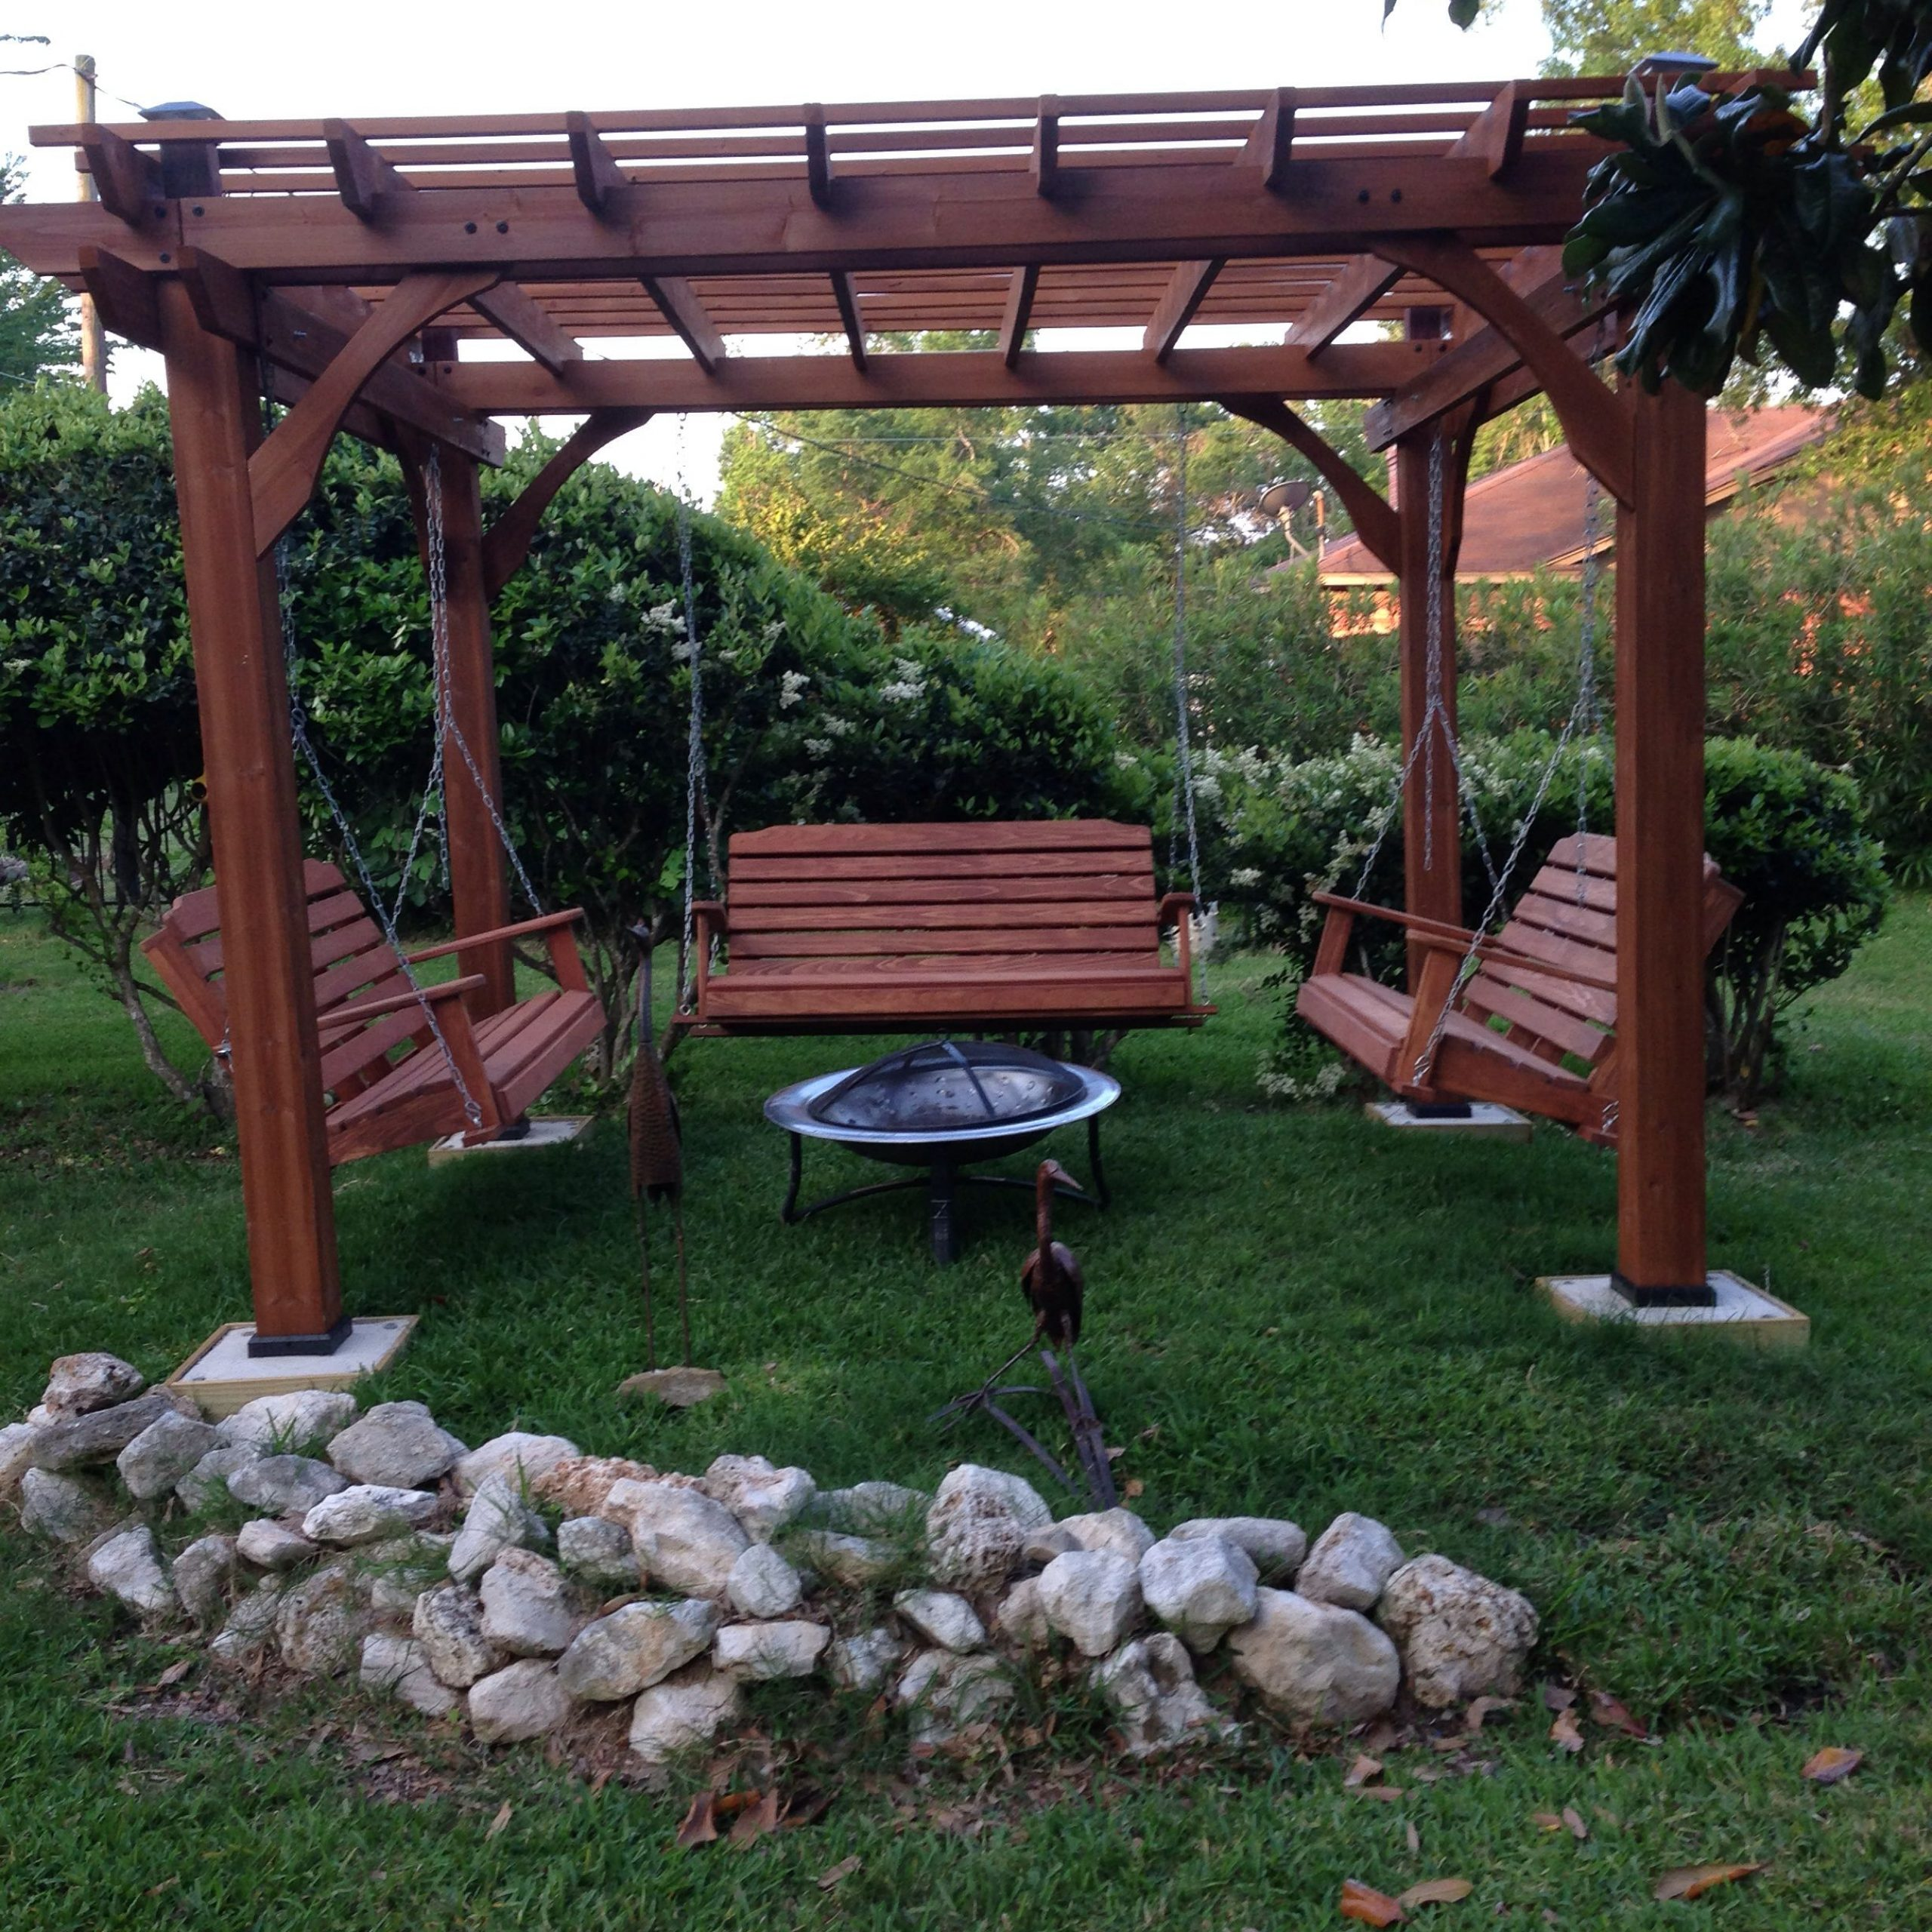 Great Outdoor Area With Pergola, Swings And Fire Pit Within Most Up To Date Patio Gazebo Porch Canopy Swings (Gallery 8 of 25)